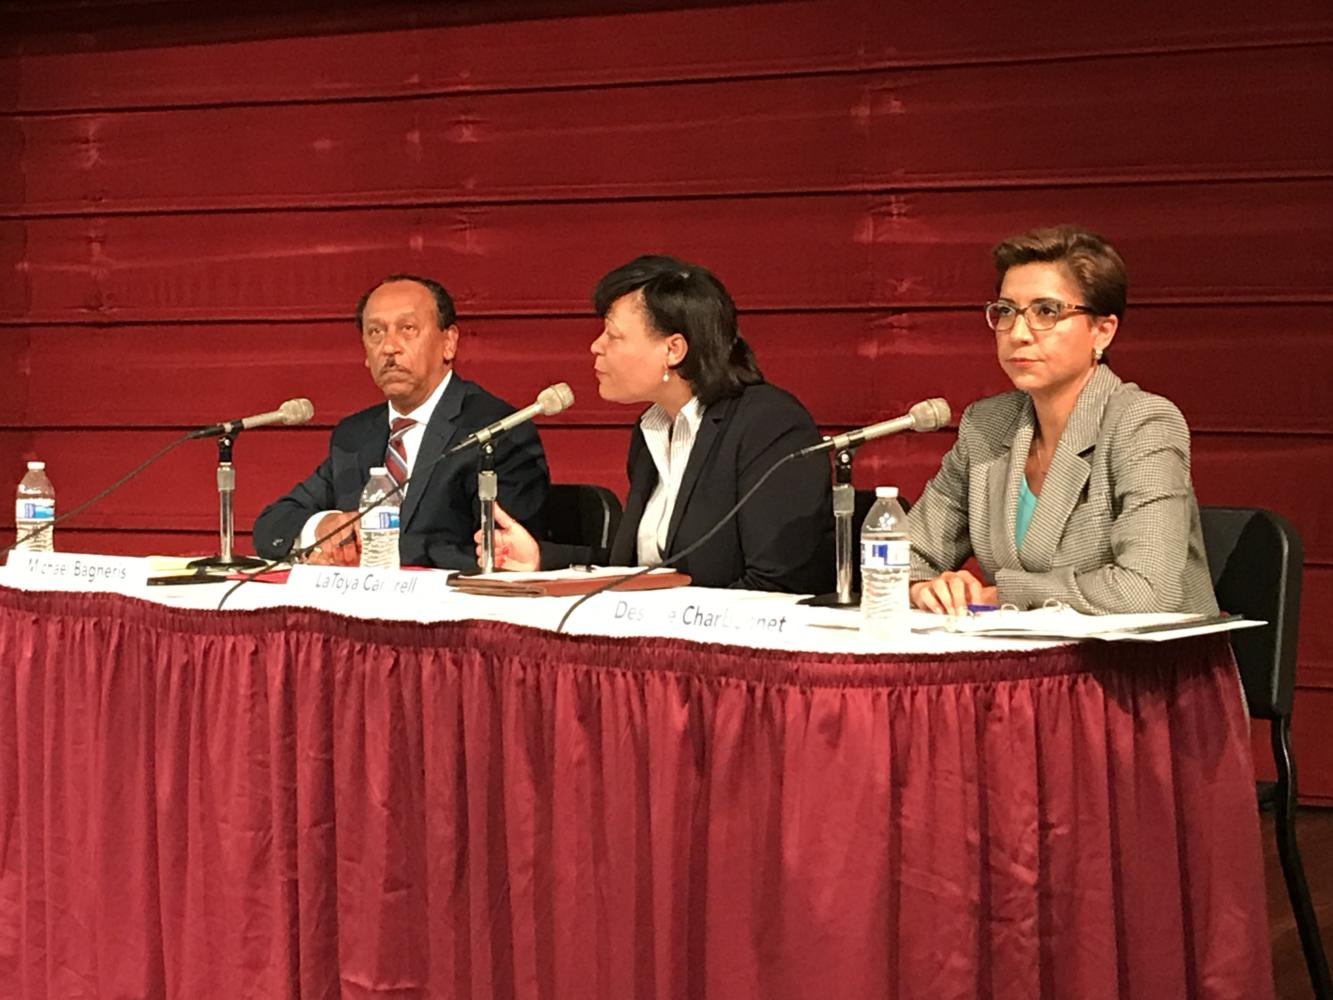 Councilwoman LaToya Cantrell speaks at Nunemaker Auditorium on Sept. 19, 2017. She was joined for a mayoral forum by former judges Michael Bagneris (left) and Desiree Charbonnet (right). Photo credit: Nick Reimann